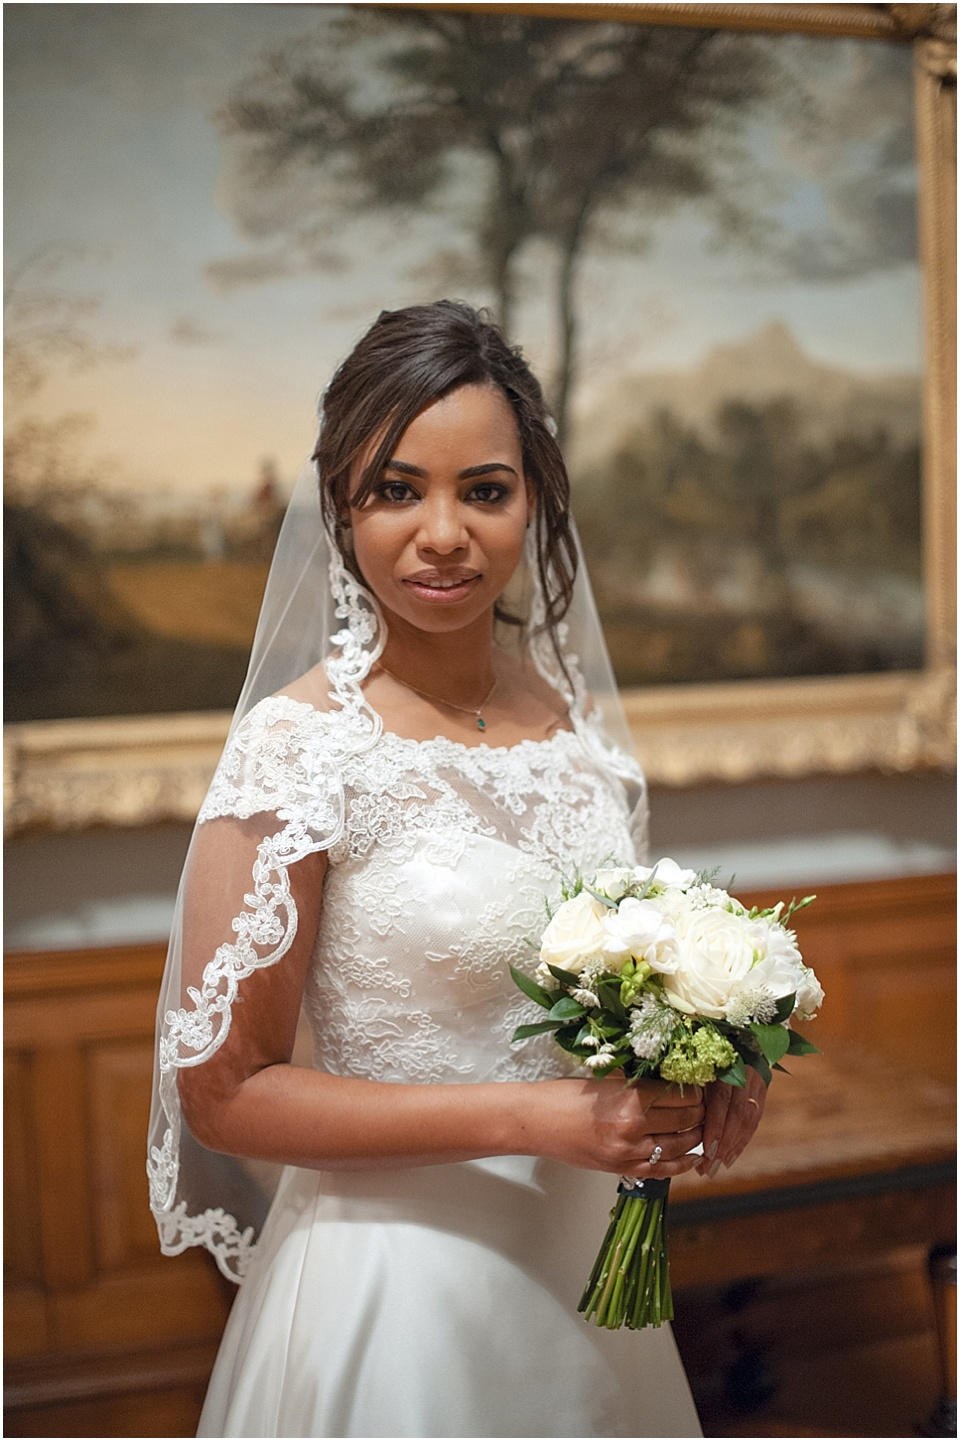 Dulwich-Gallery-Multicultural-wedding-Plenty-to-Delcare-Photography-www.nubride.com_4155.jpg